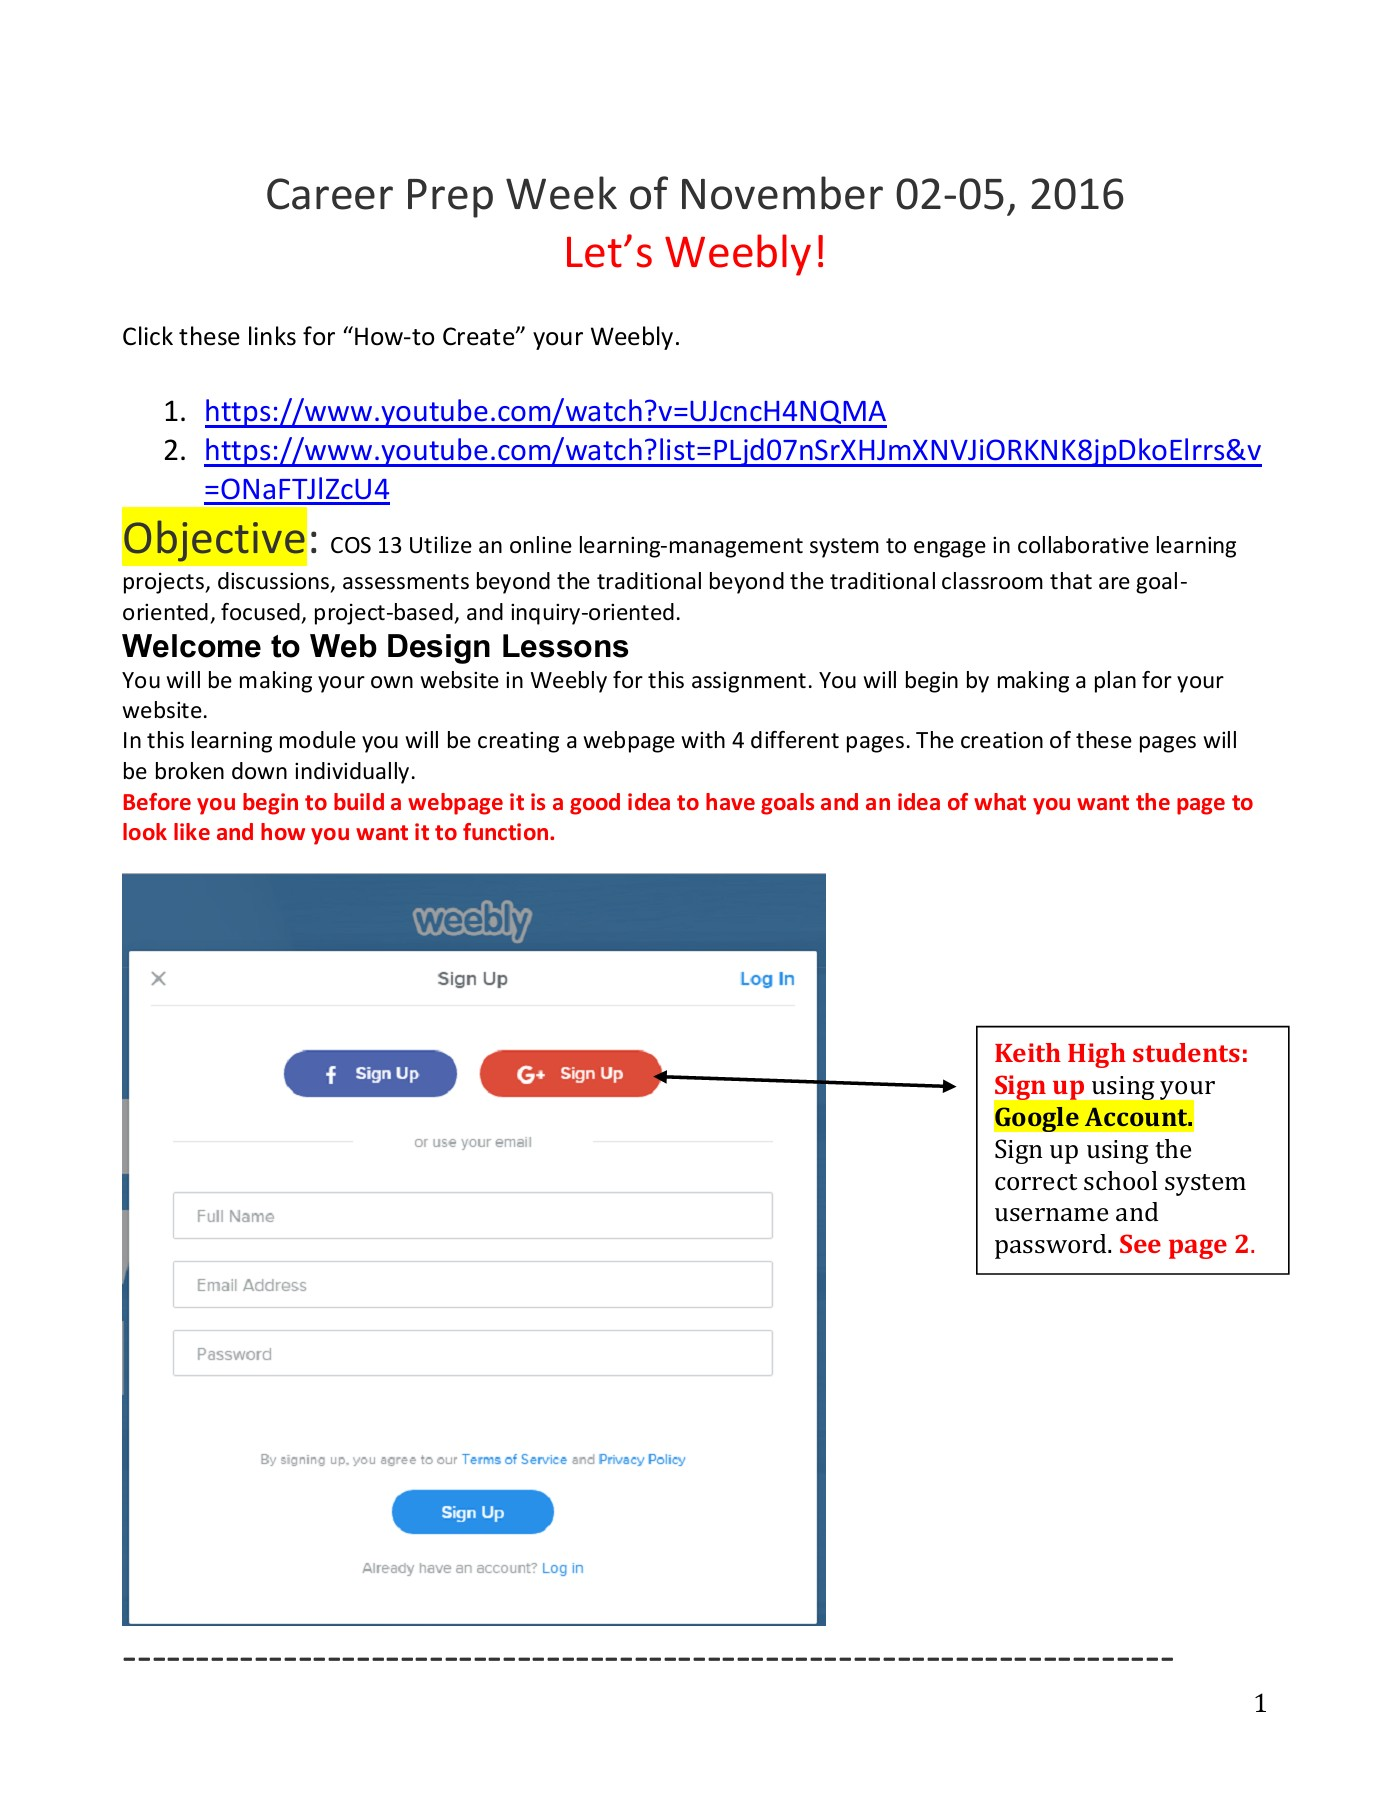 Weebly Website Creation How-to 14-18 November 2016 Pages 1 - 28